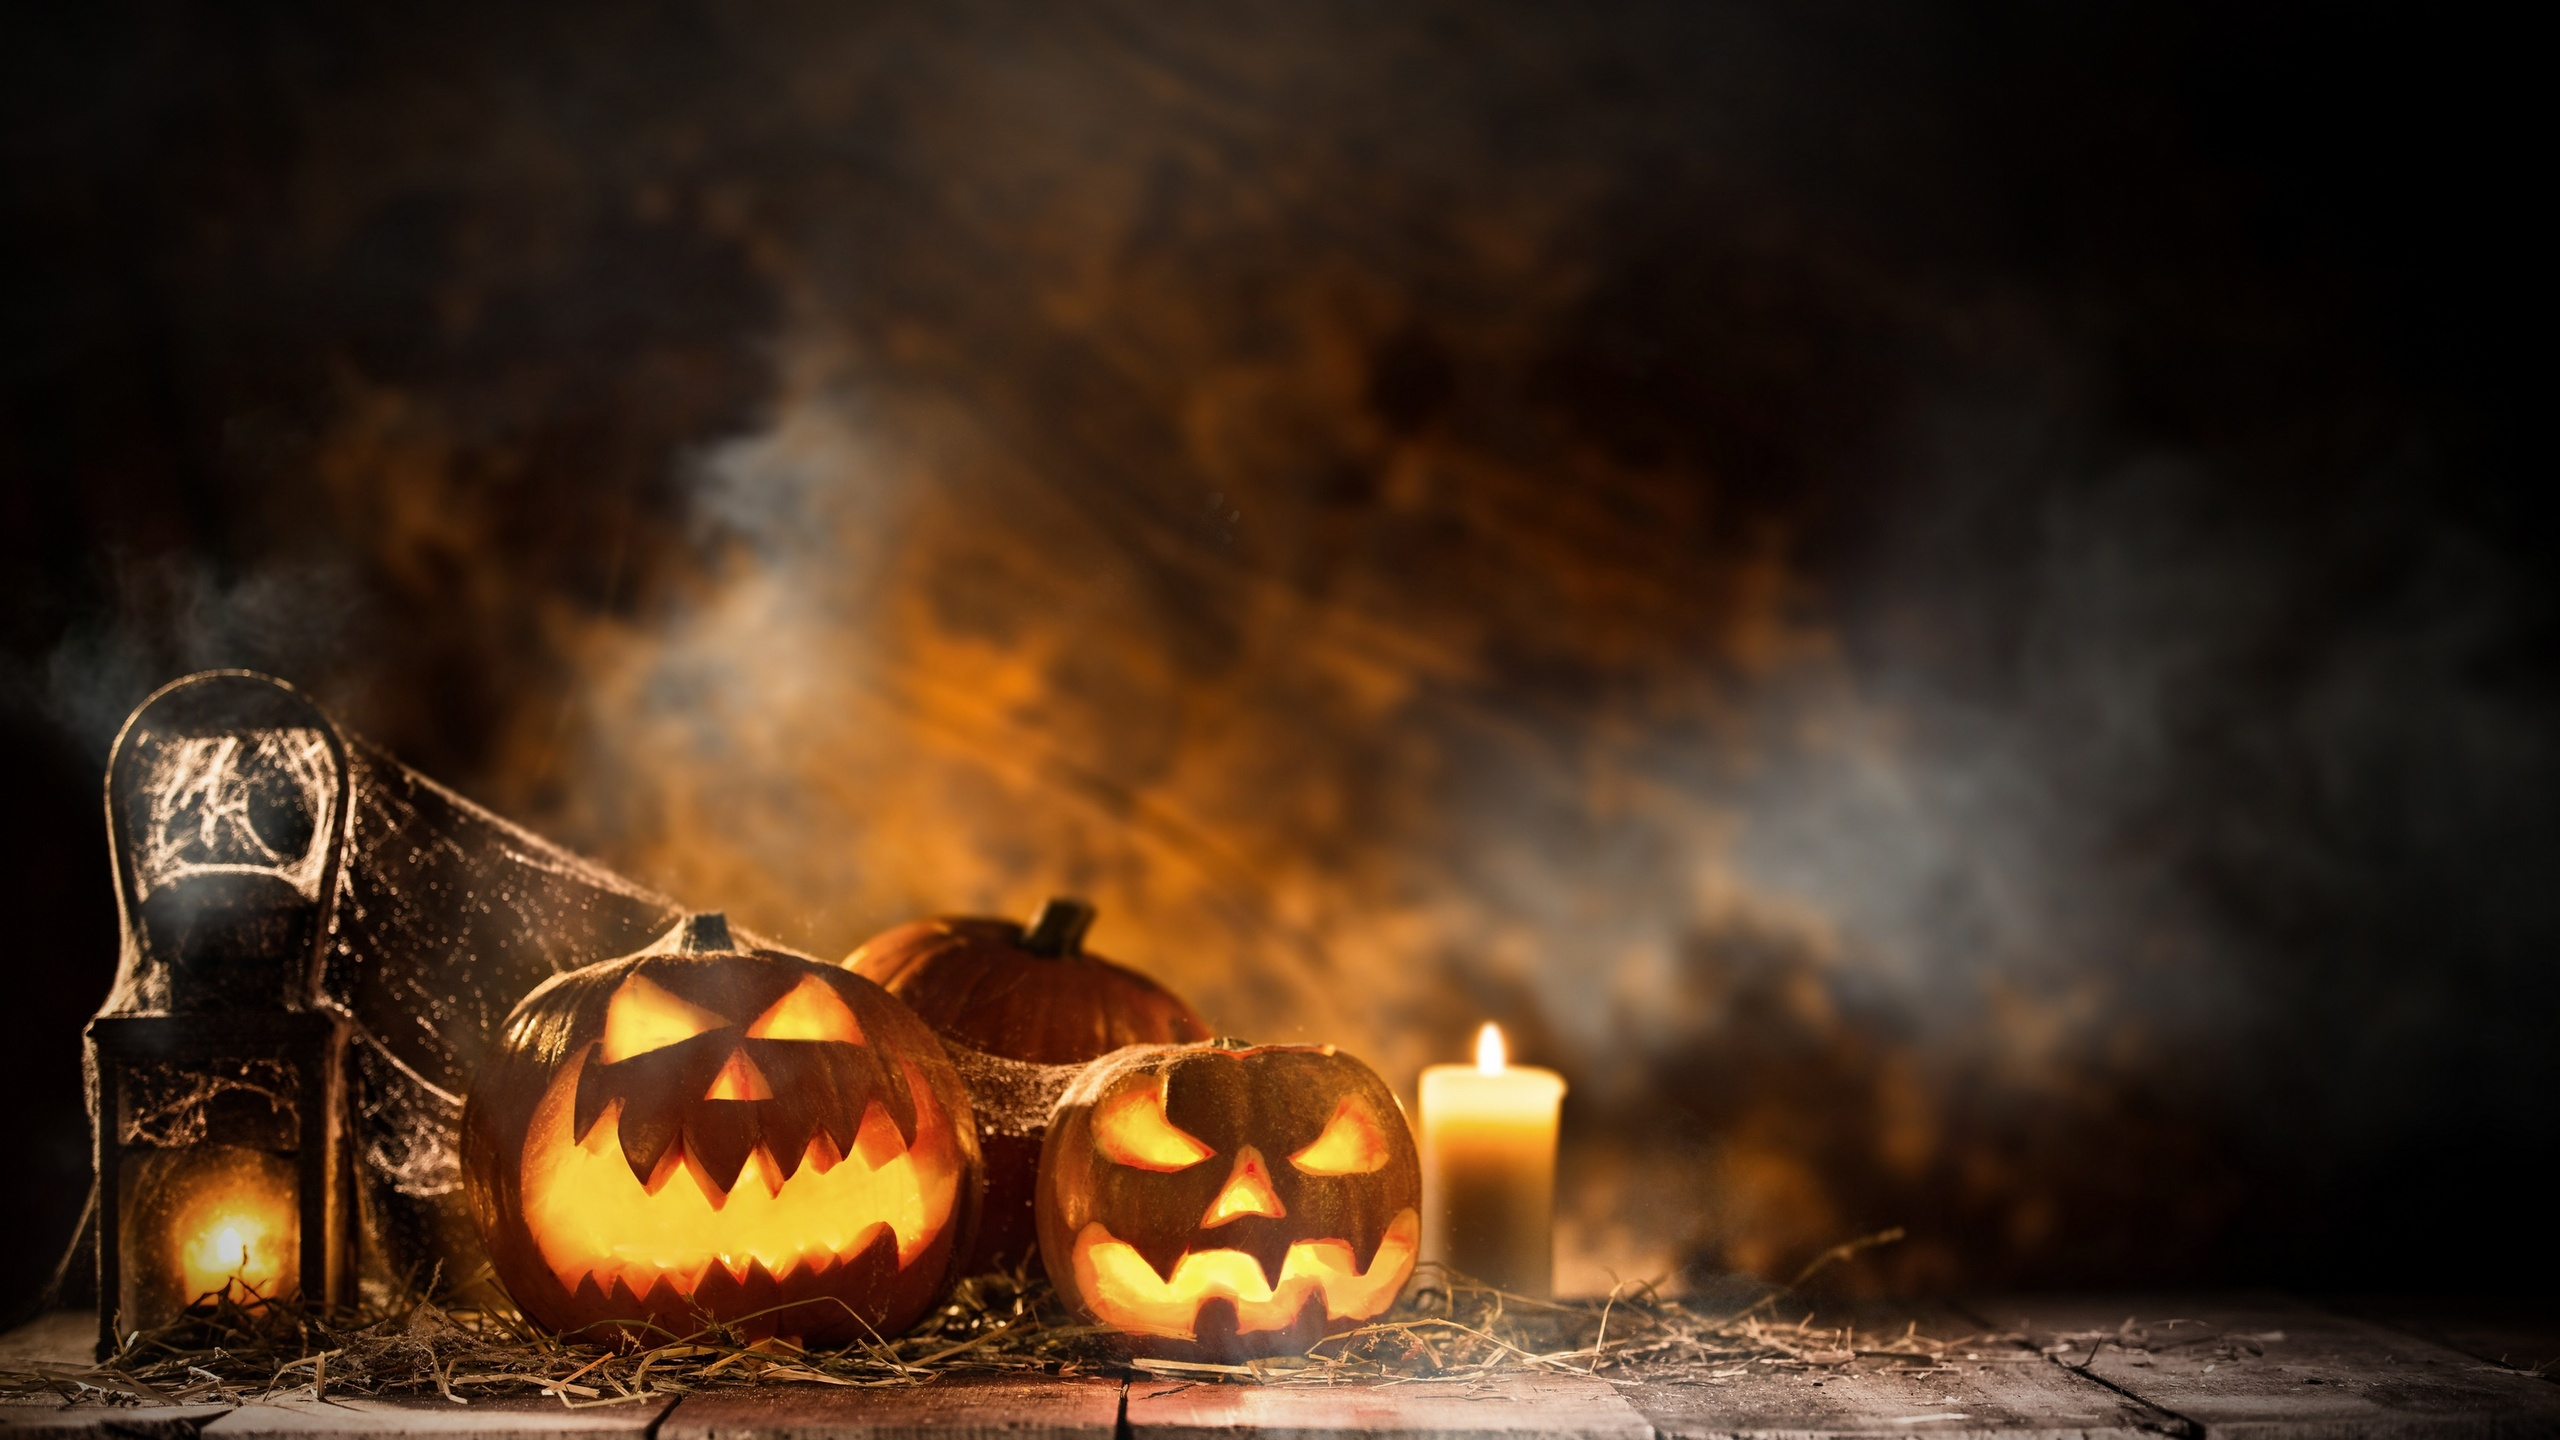 halloween-candle-and-pumpkins-hk.jpg